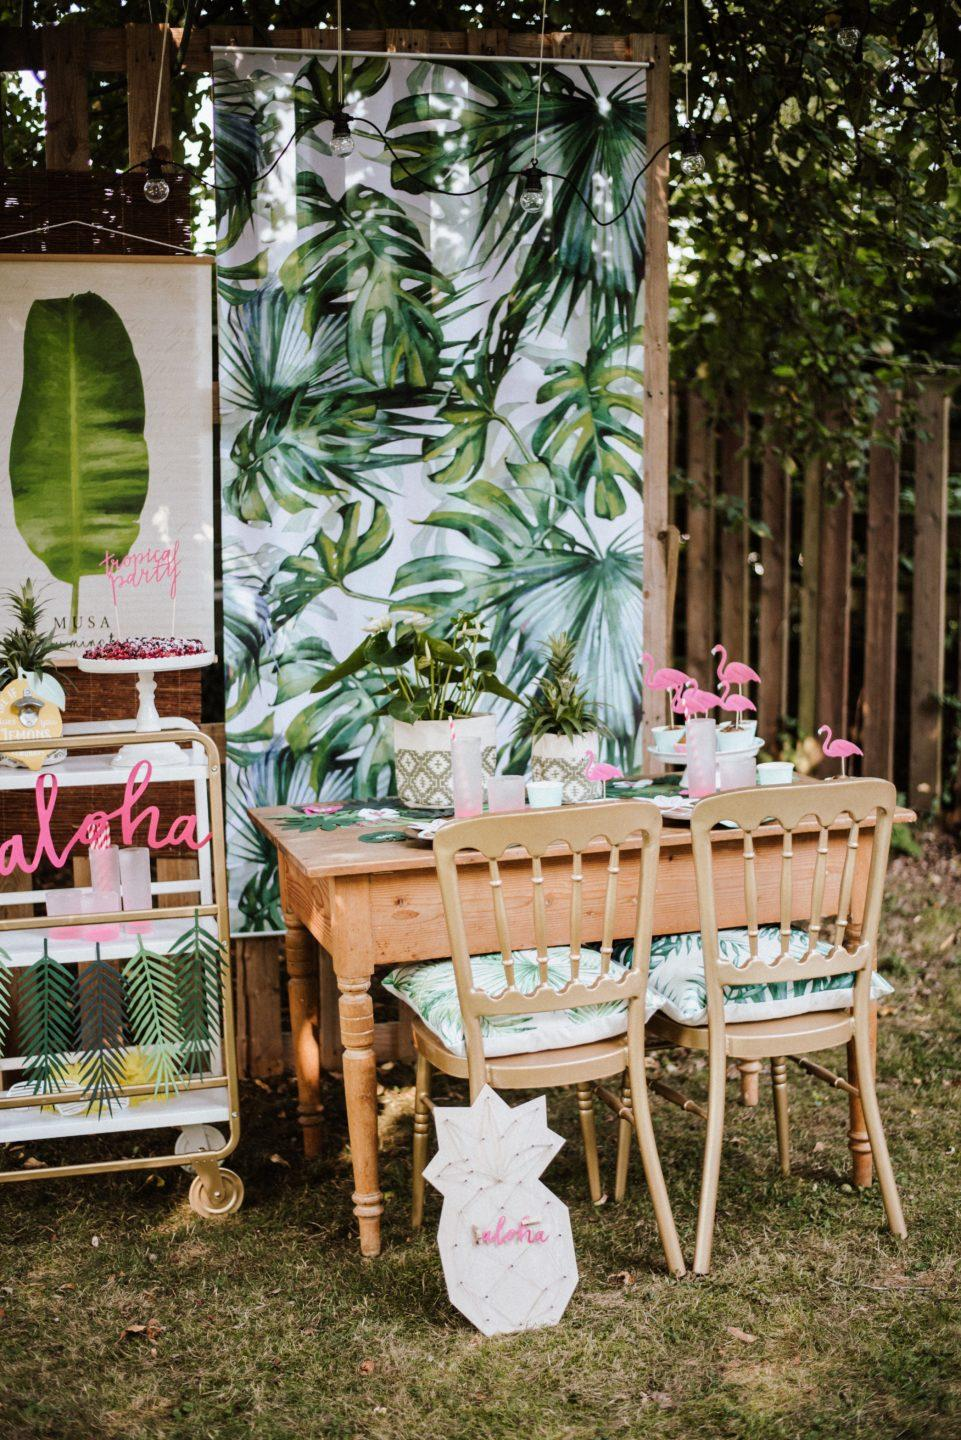 mottoparty karibik hawaii diy ideen stephanie s events und hochzeitsplanung. Black Bedroom Furniture Sets. Home Design Ideas